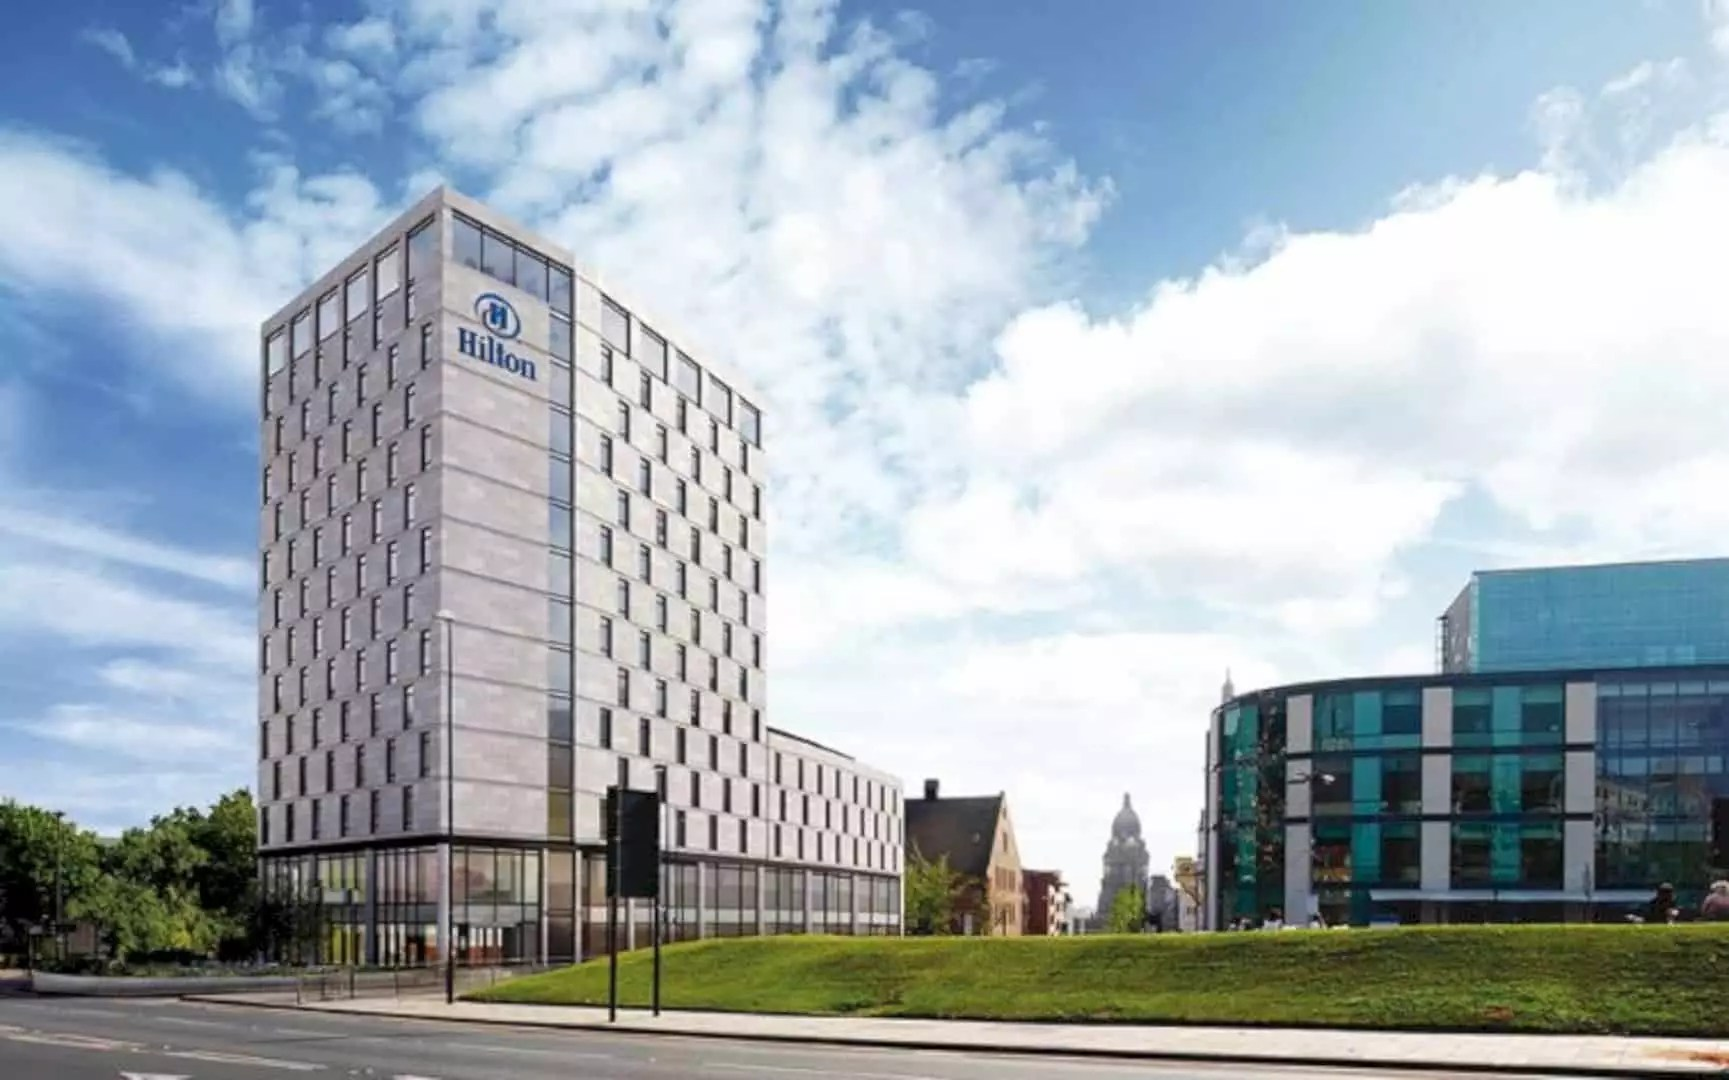 Hilton Leeds Arena: A Luxury Hotel for City's Principal Business and Leisure